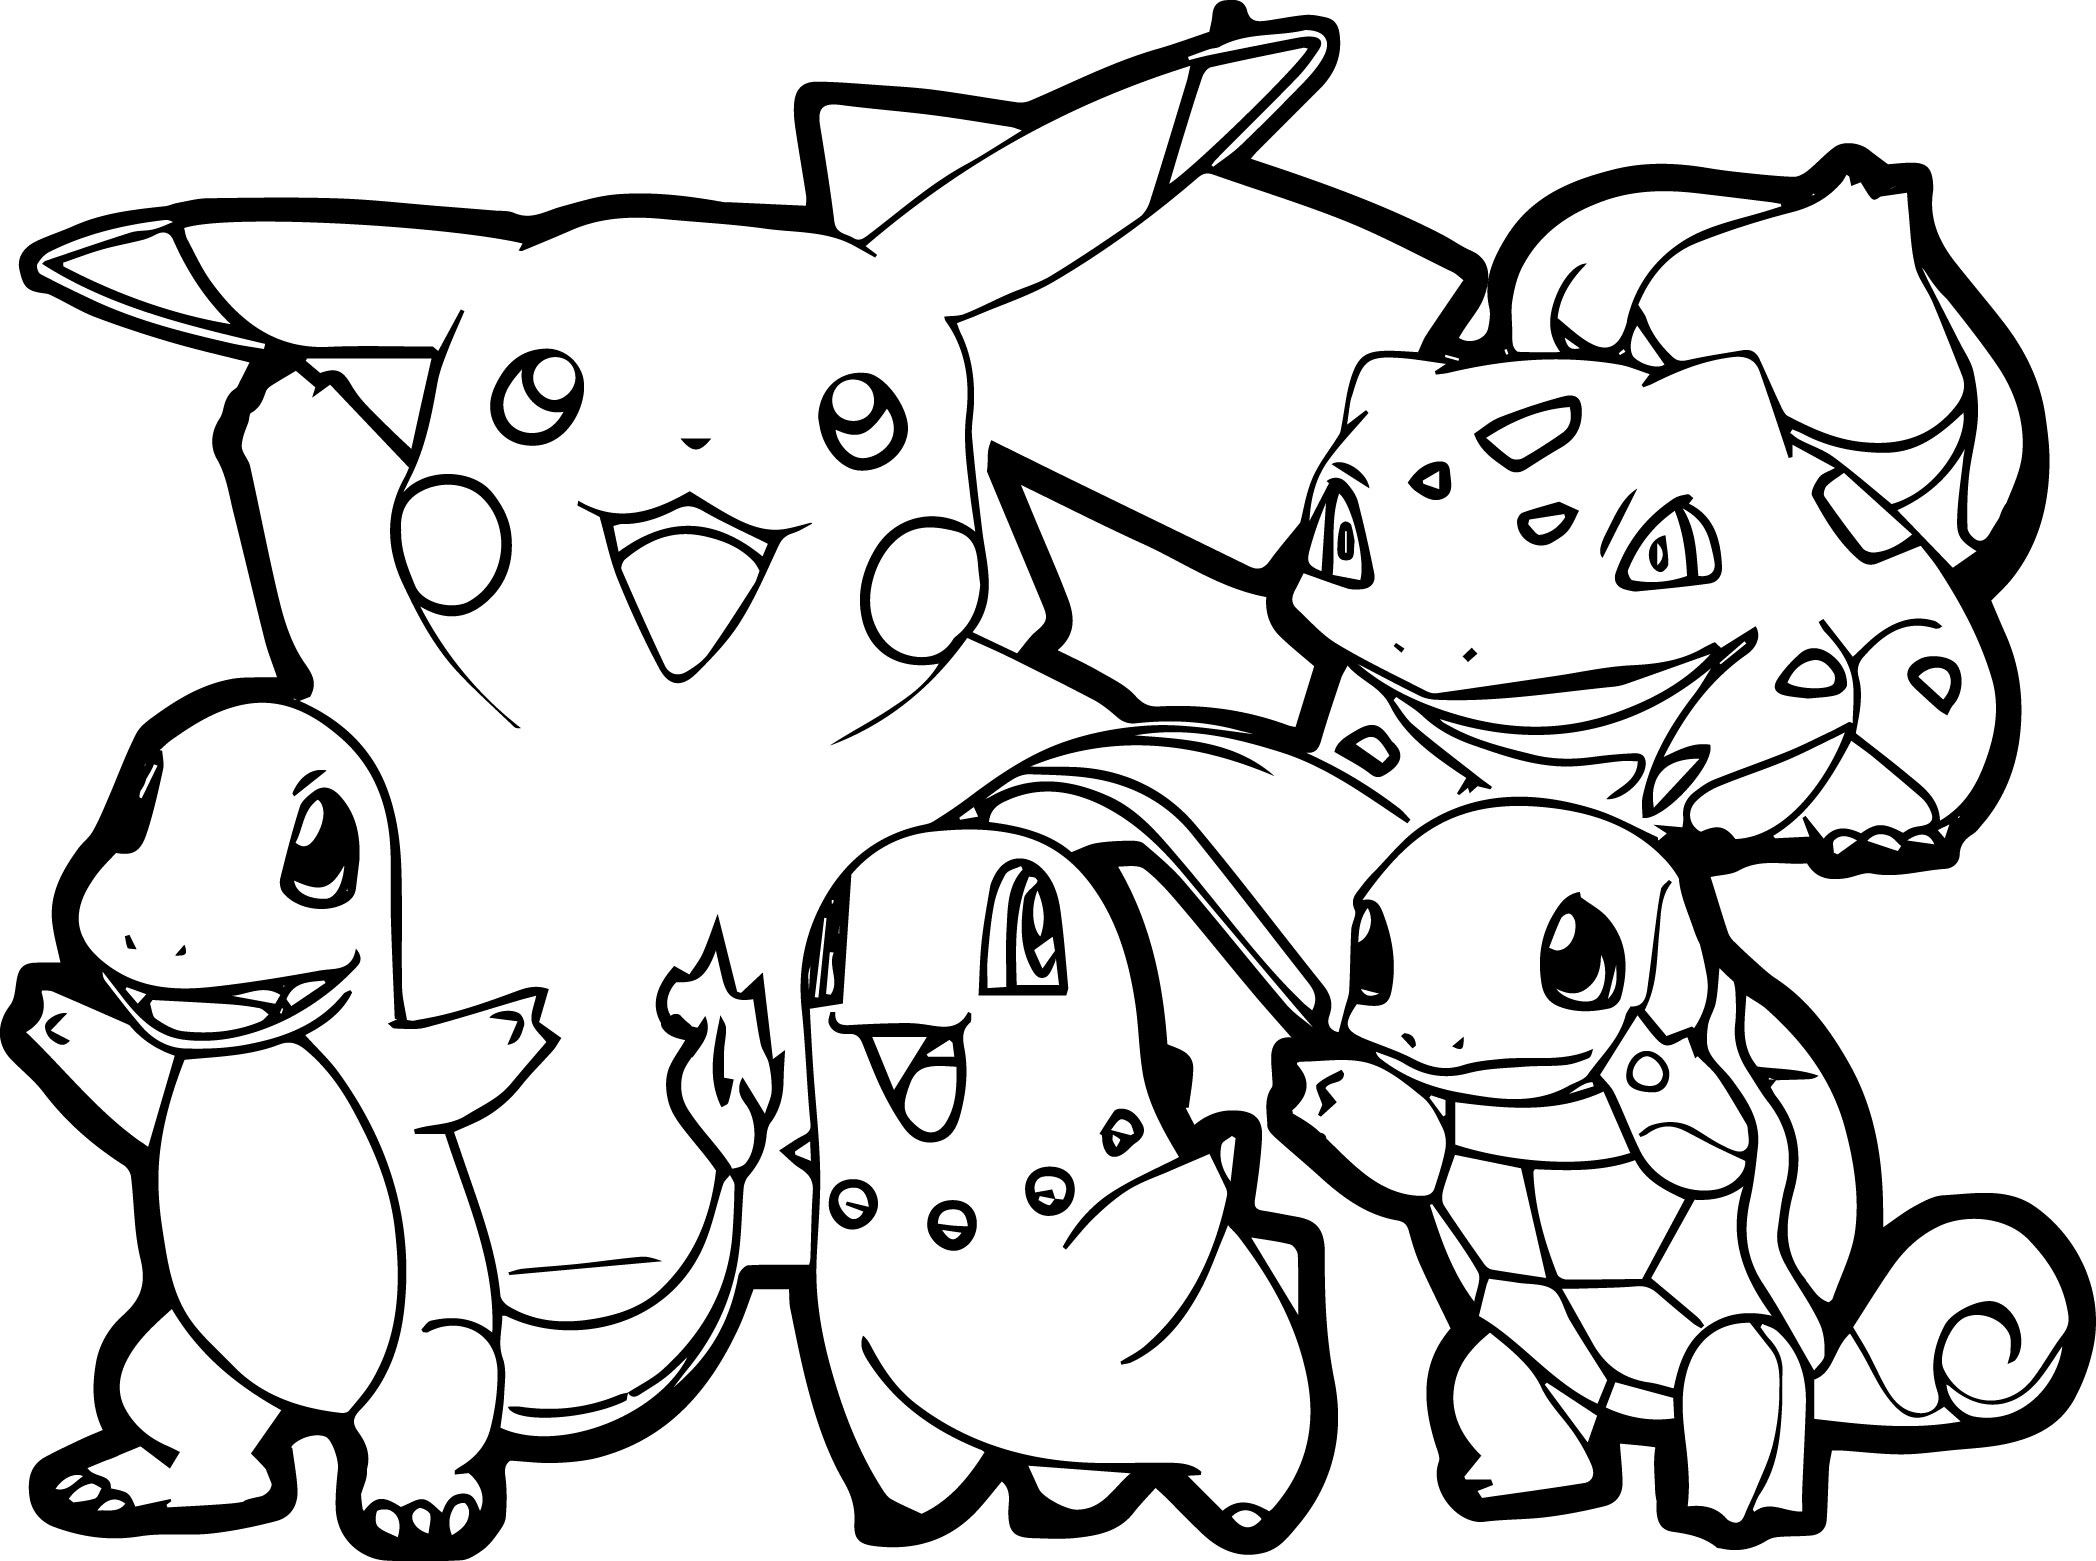 All Pokemon Coloring Page 01 Ash Pages | Pokemon Characters | Pinterest